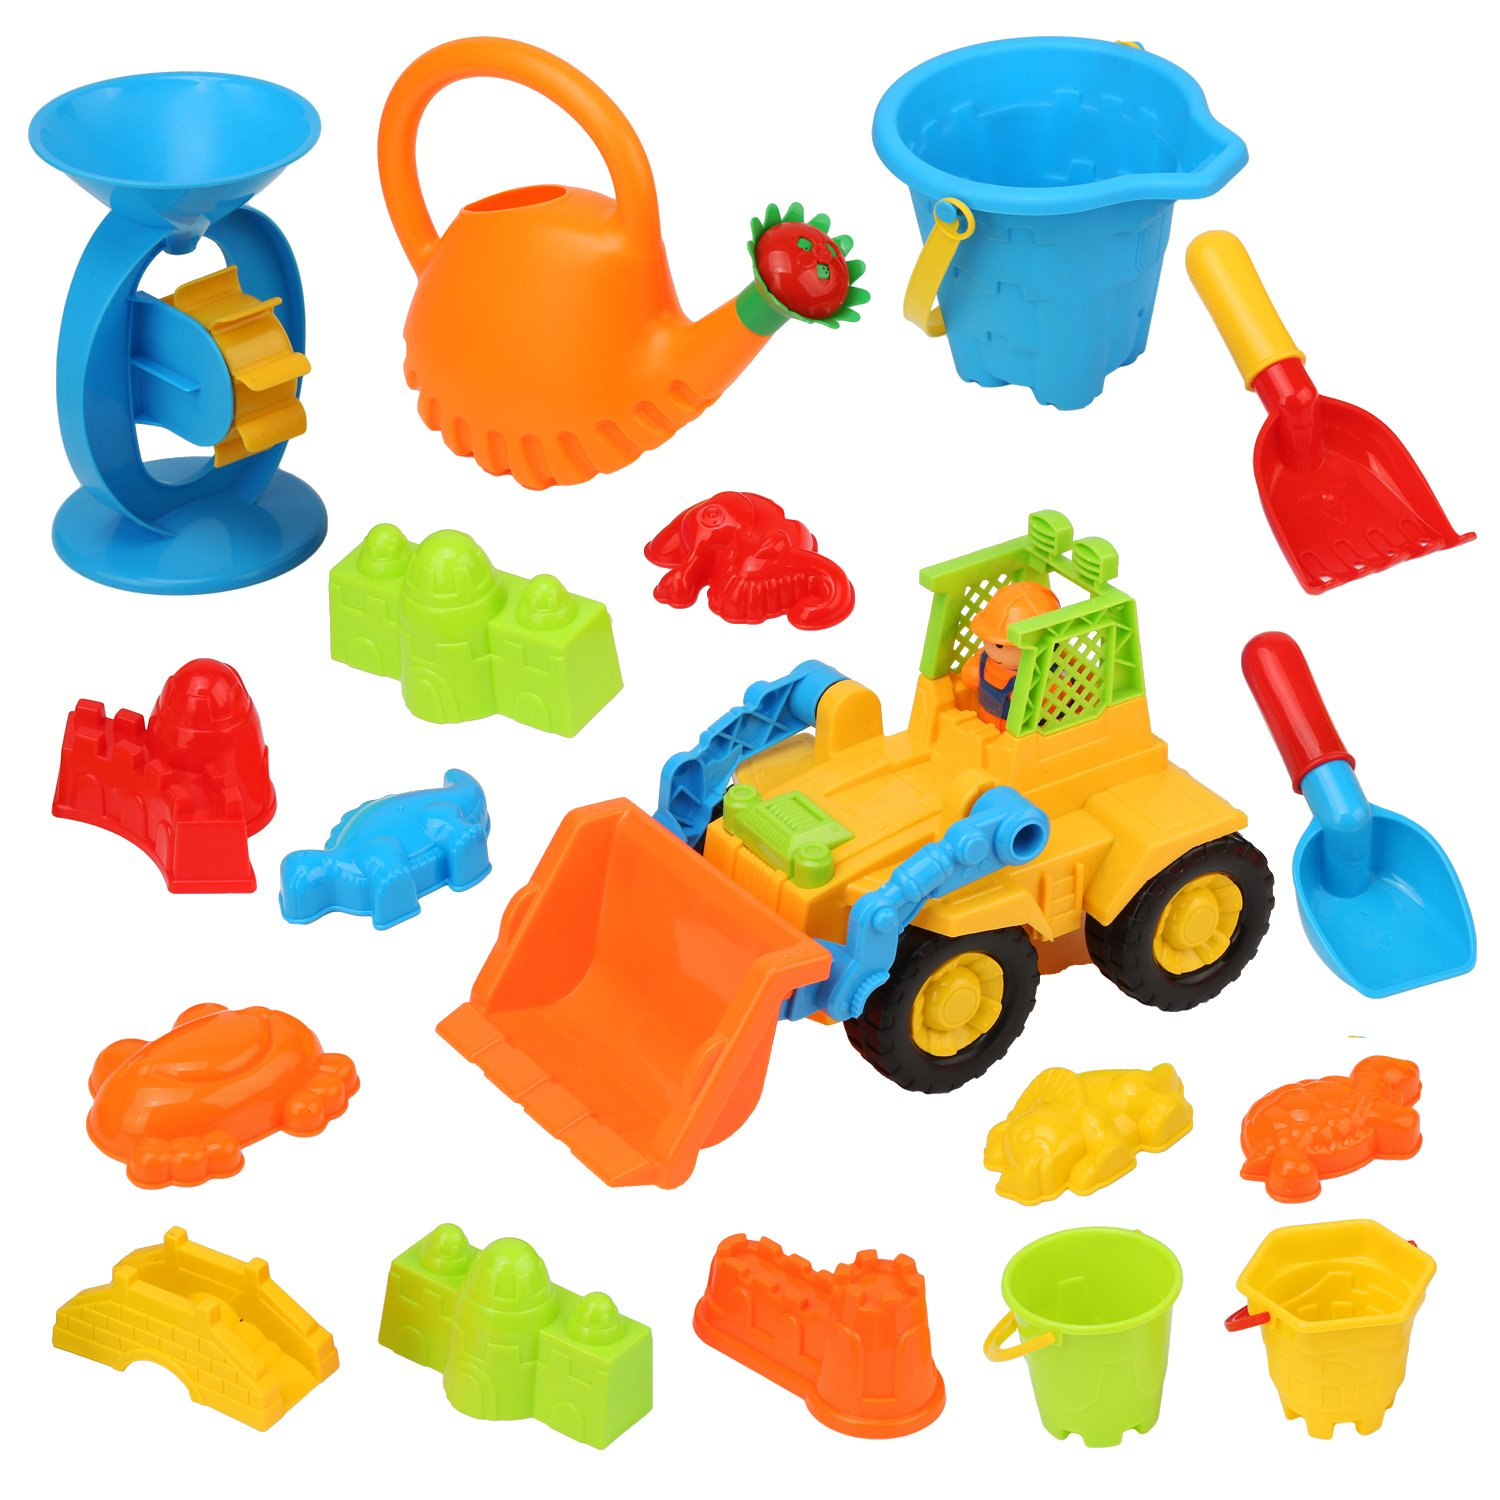 QuadPro Beach Sand Toy Set for Kids 17 Piece Inclued Sand Wheel, Toy Cars, Sand Molds,sand castle building kit, Bucket, Shovel And Rake Tools, Toddlers Outdoor Sandbox Toys for Boys and Girls